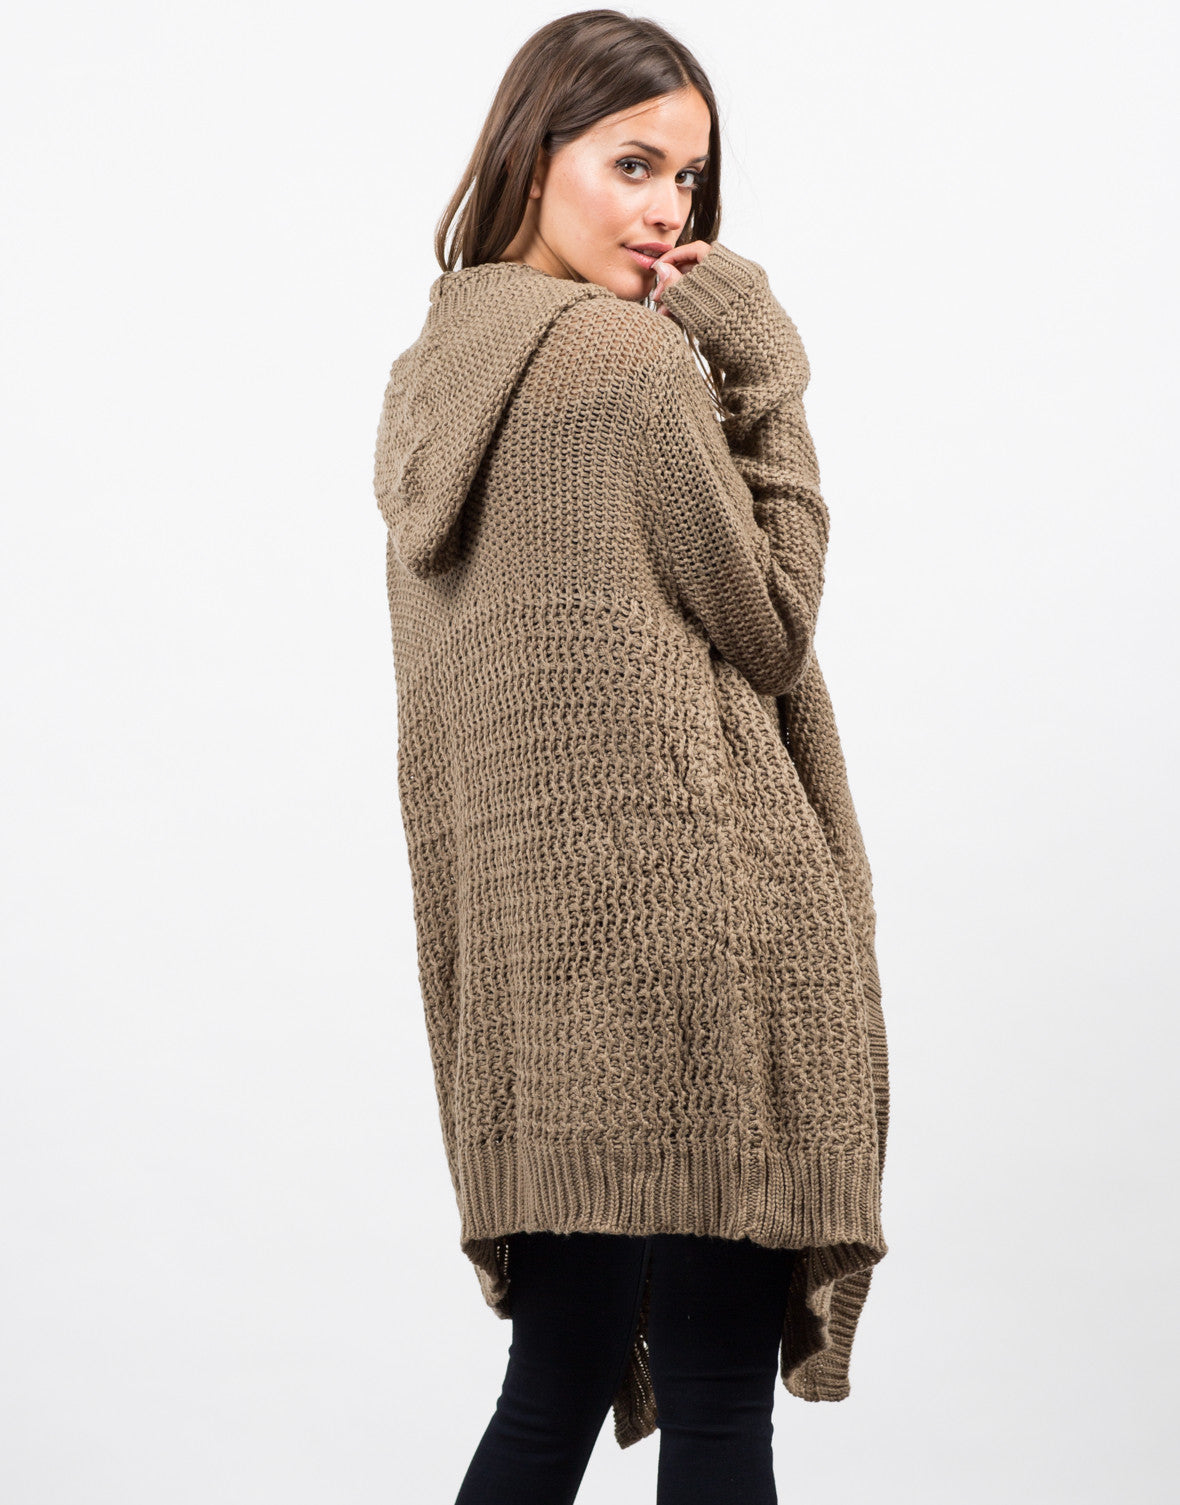 Back View of Open Stitch Hooded Cardigan